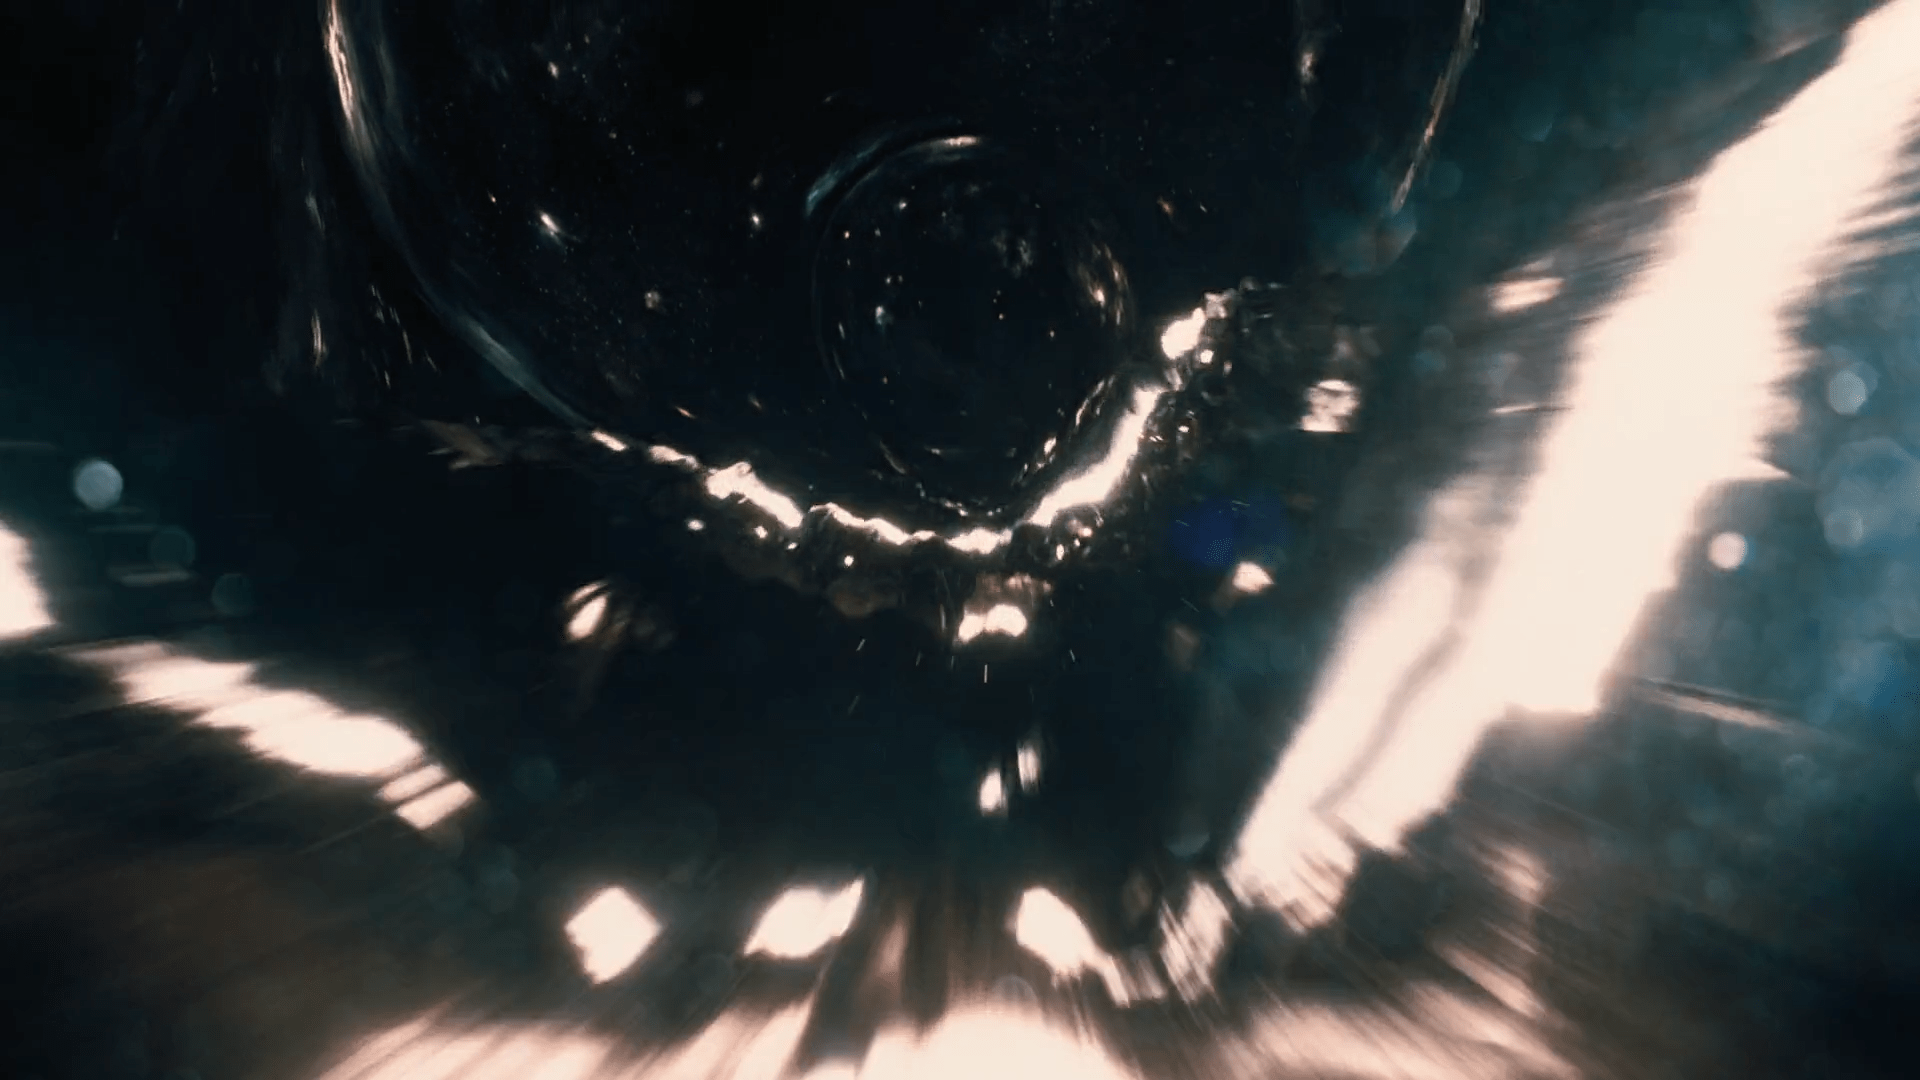 Epic Movie Hd Wallpapers Interstellar Full Hd Wallpaper And Background Image